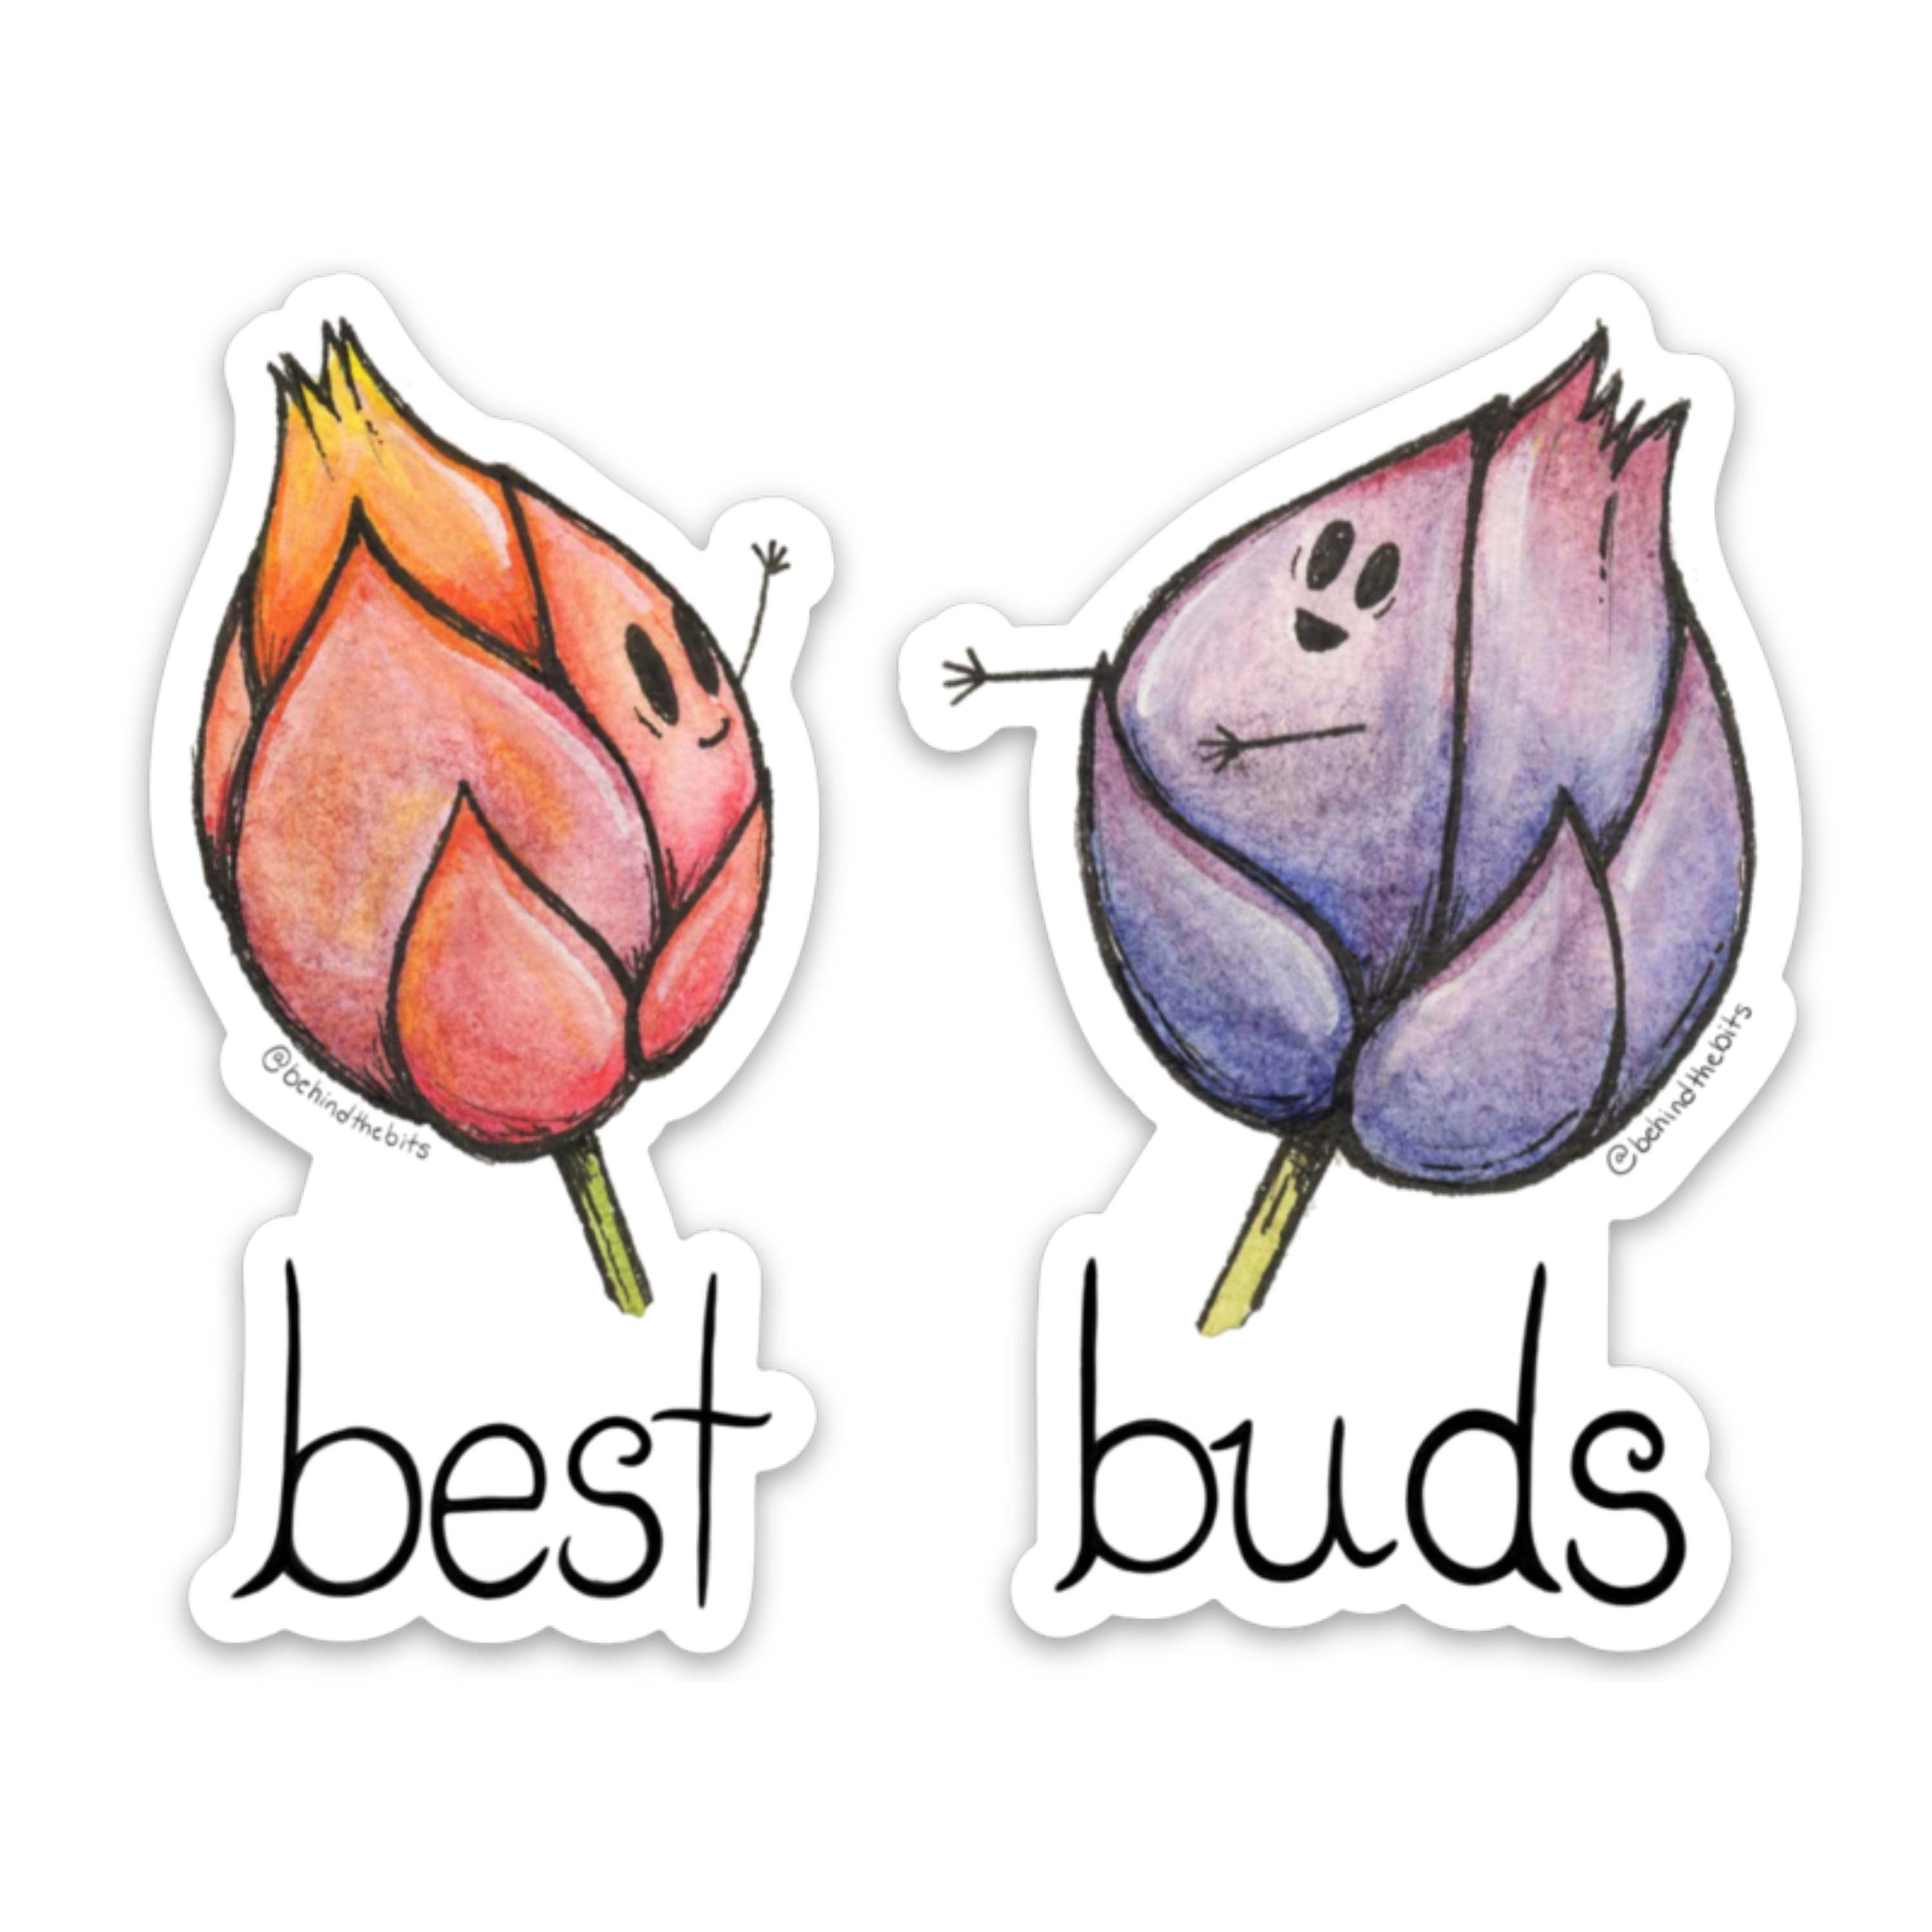 "Best Buds - Set of two 3"" x 3"" Die Cut Stickers"